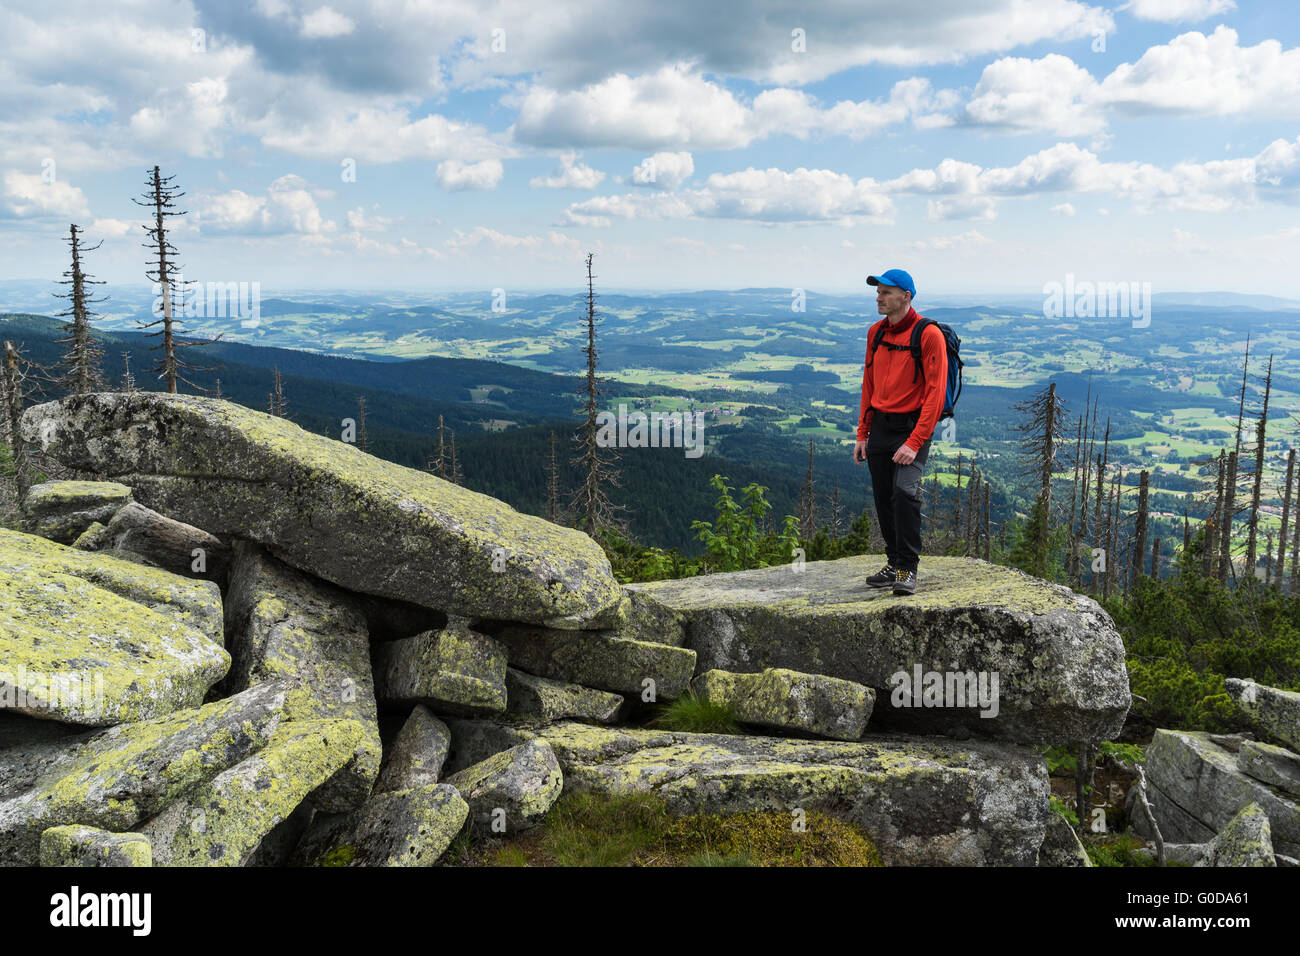 Hiker with outlook - Stock Image